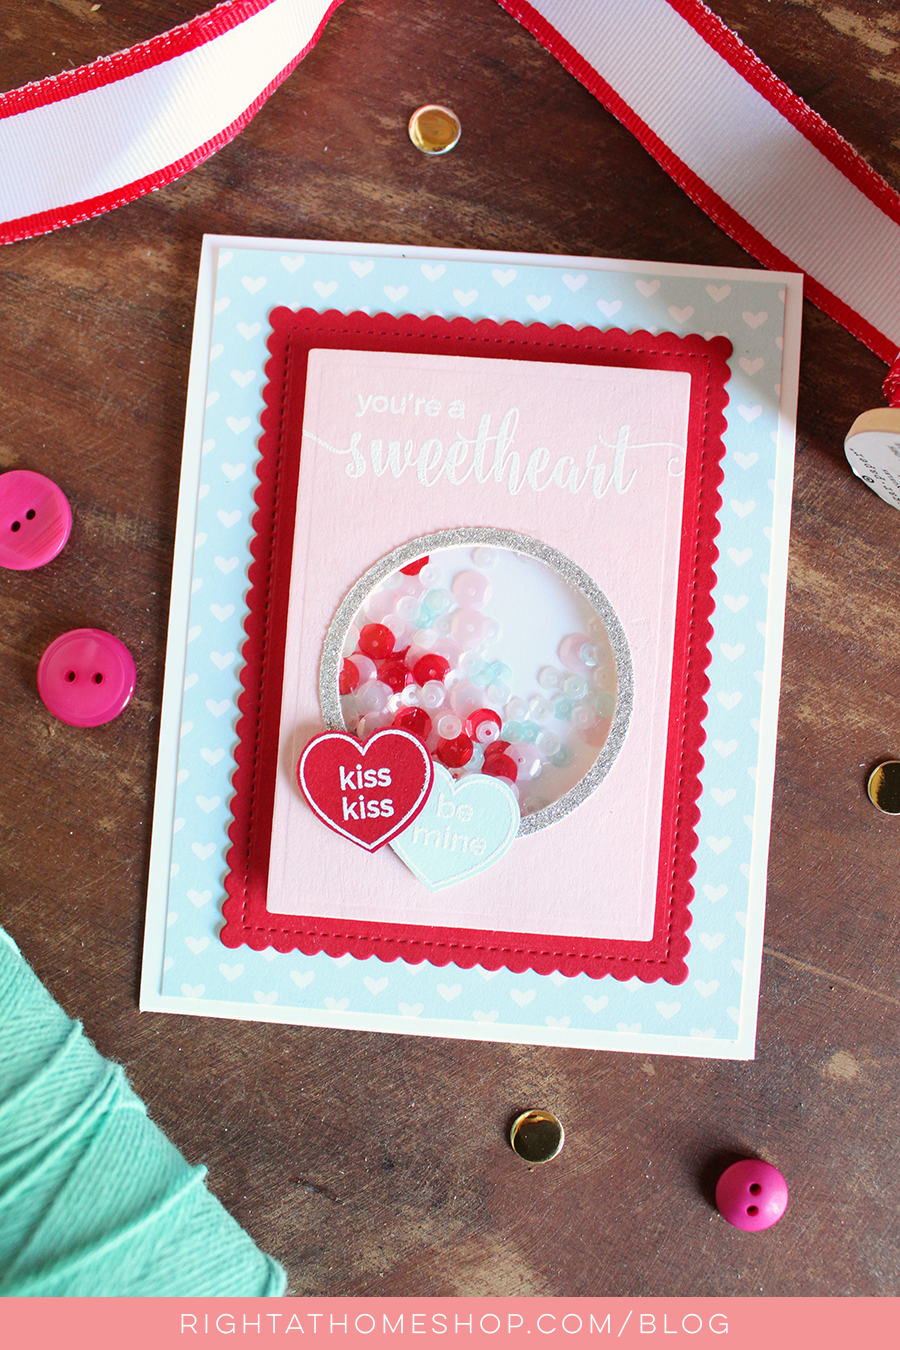 Home is Where the Heart Is Blog Hop // Right at Home January Release - Right at Home Shop